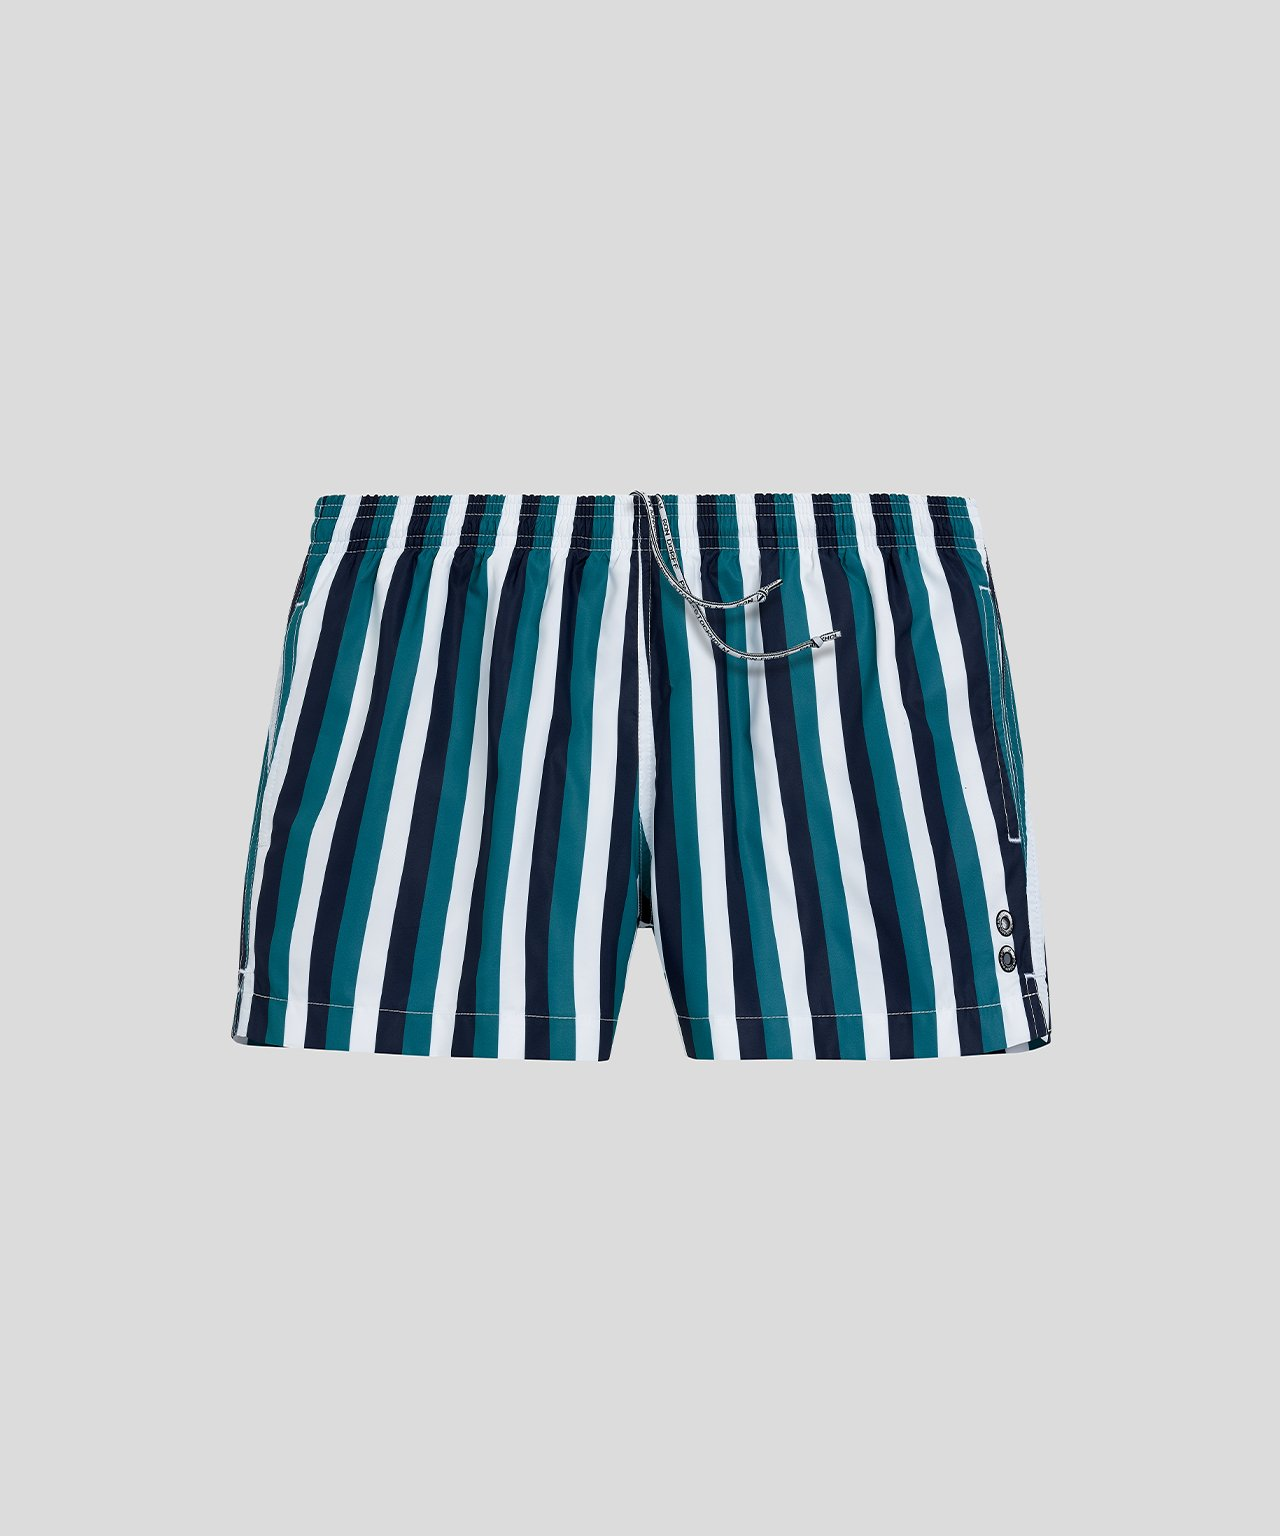 Swim Shorts Vertical Stripes - green light/white/navy